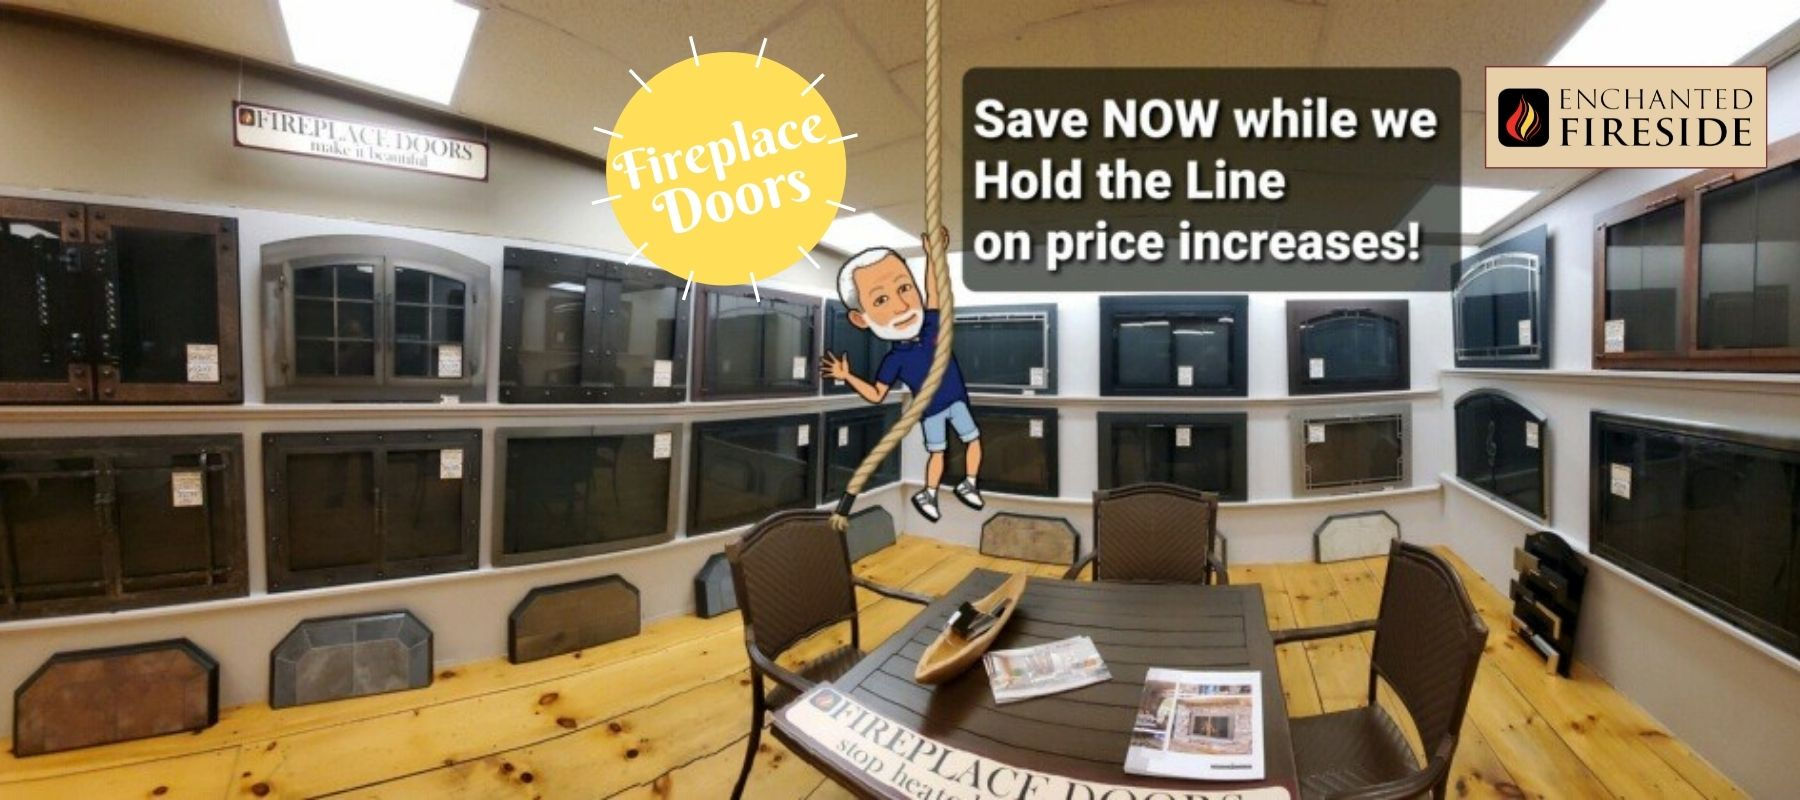 Save on fireplace doors now only at Enchanted Fireside. We are not increasing our prices.